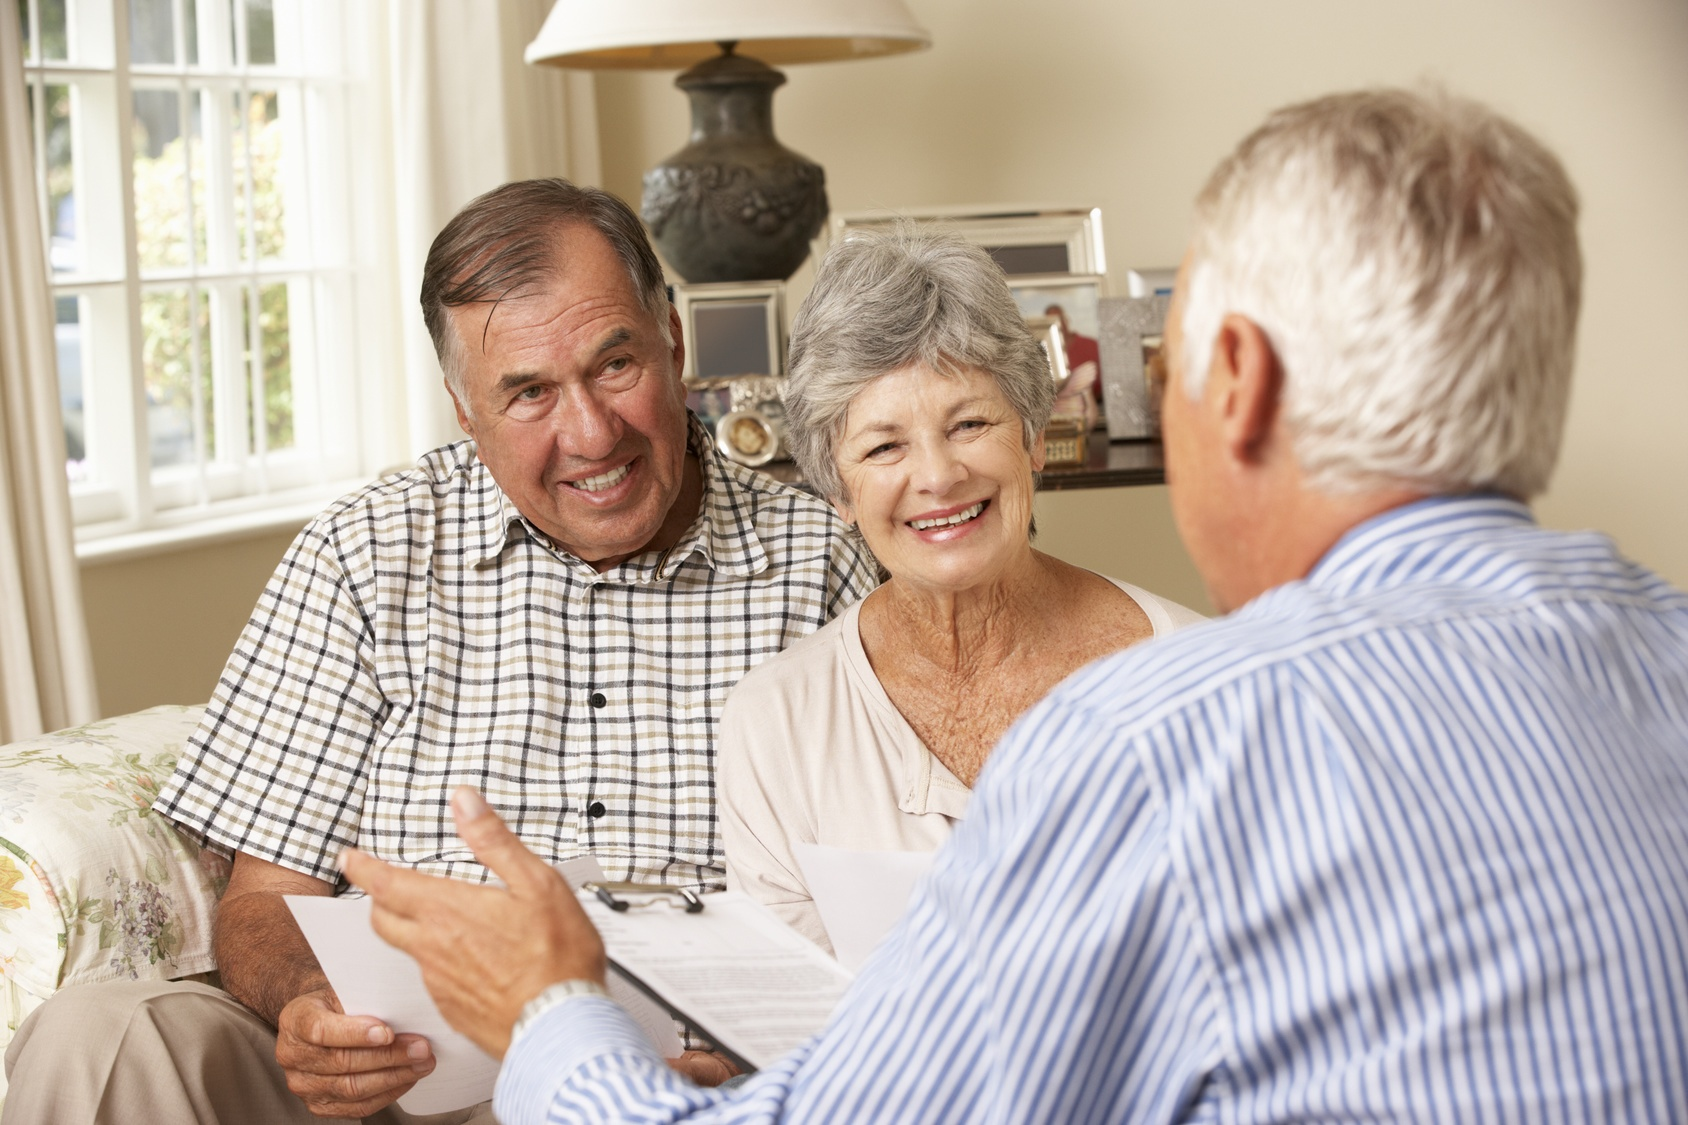 4 Ways Businesses & Communities Can Promote Positive Aging